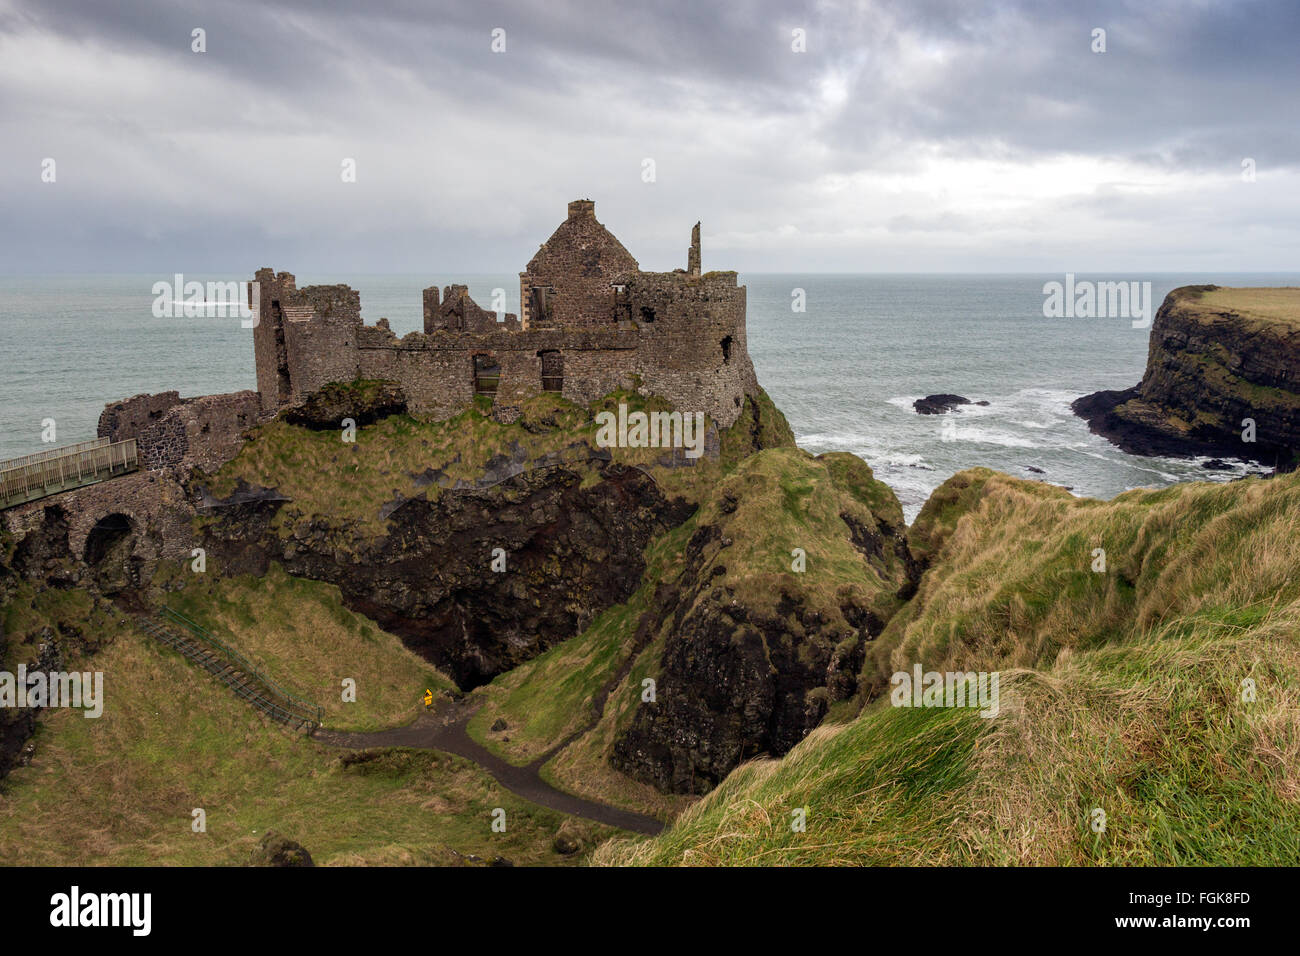 Dunluce castle ruins in Northern Ireland - Stock Image